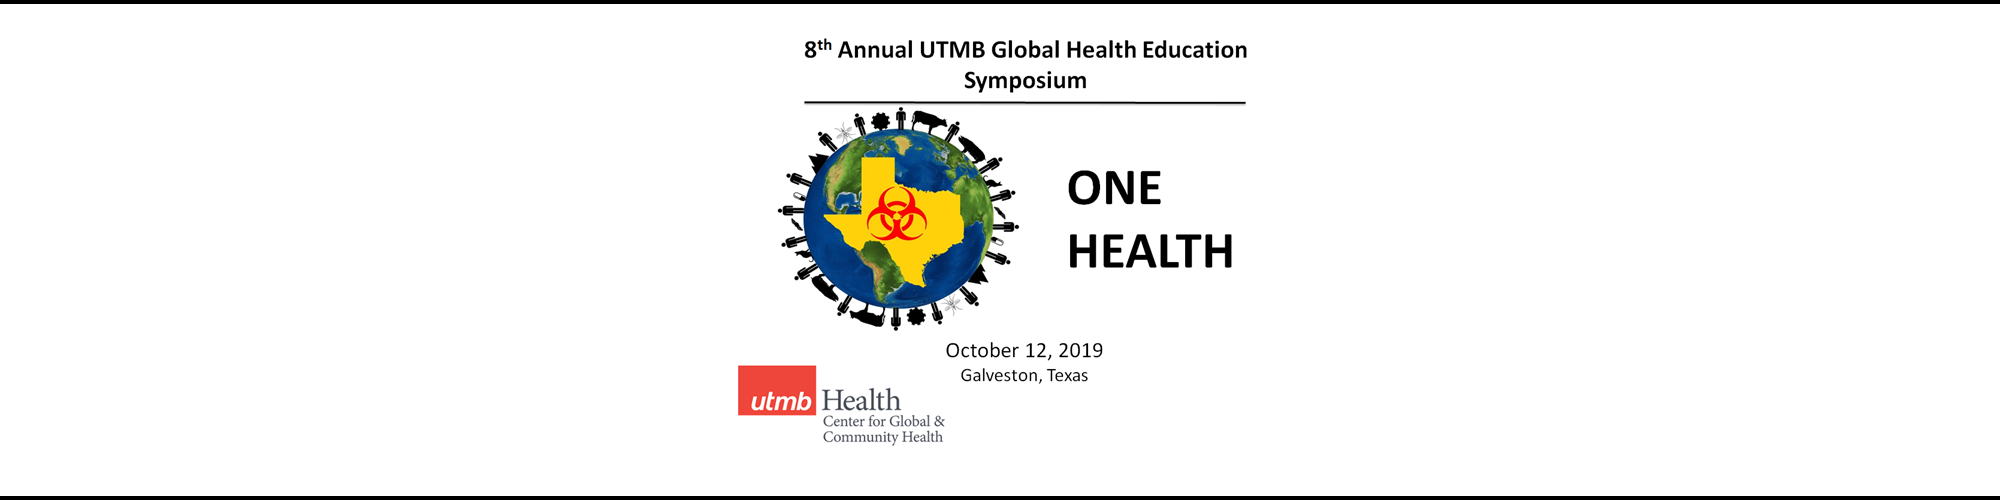 8th Annual Symposium 2019